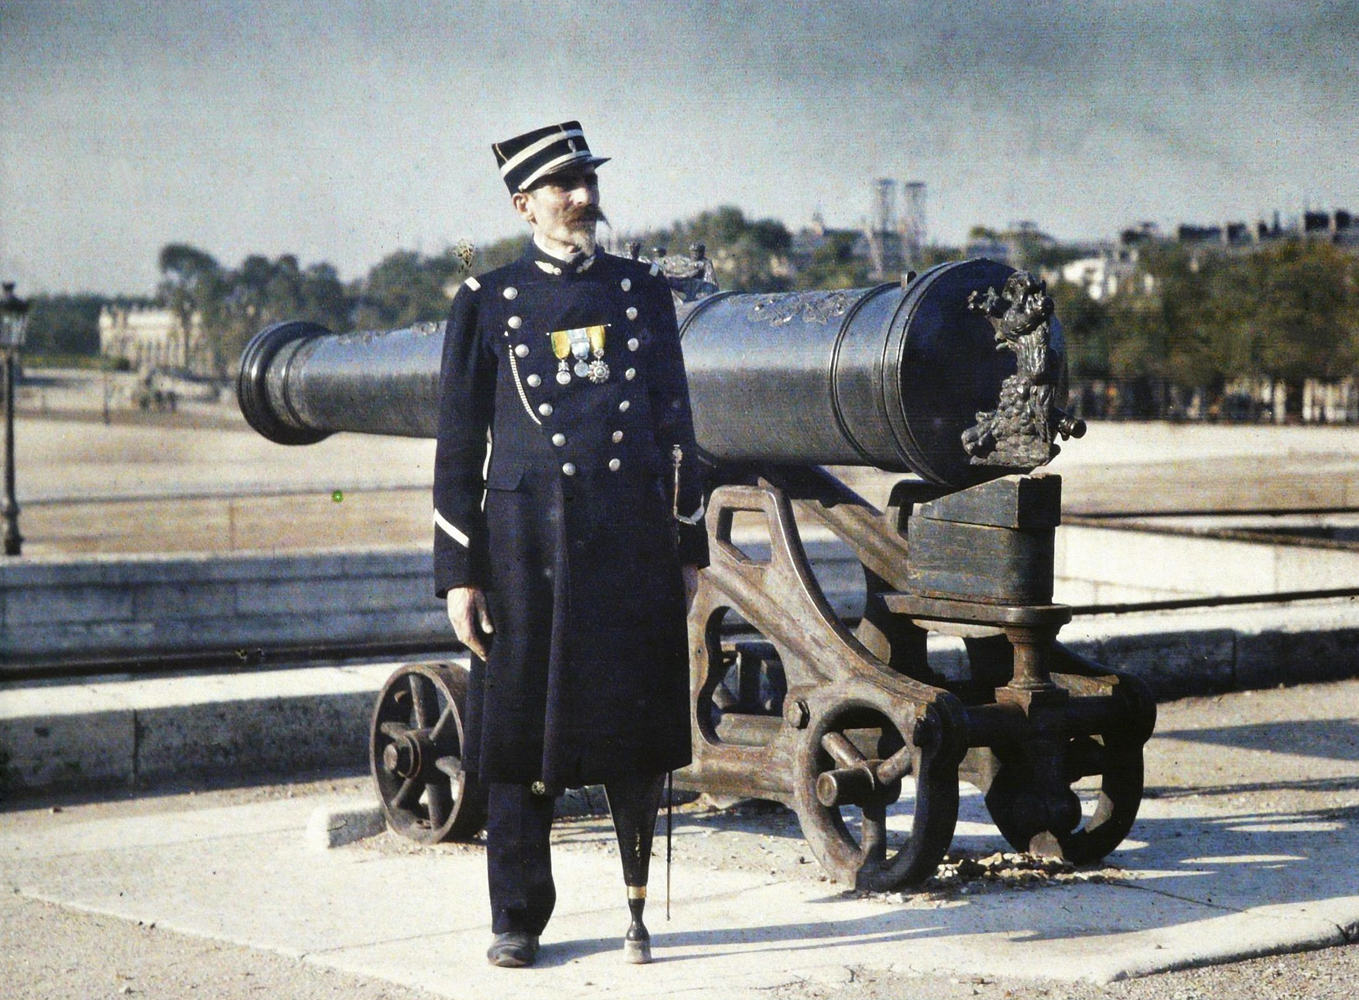 A soldier in uniform with three medals stands next to a cannon in Paris in 1918. His left leg has been replaced by an artificial limb.